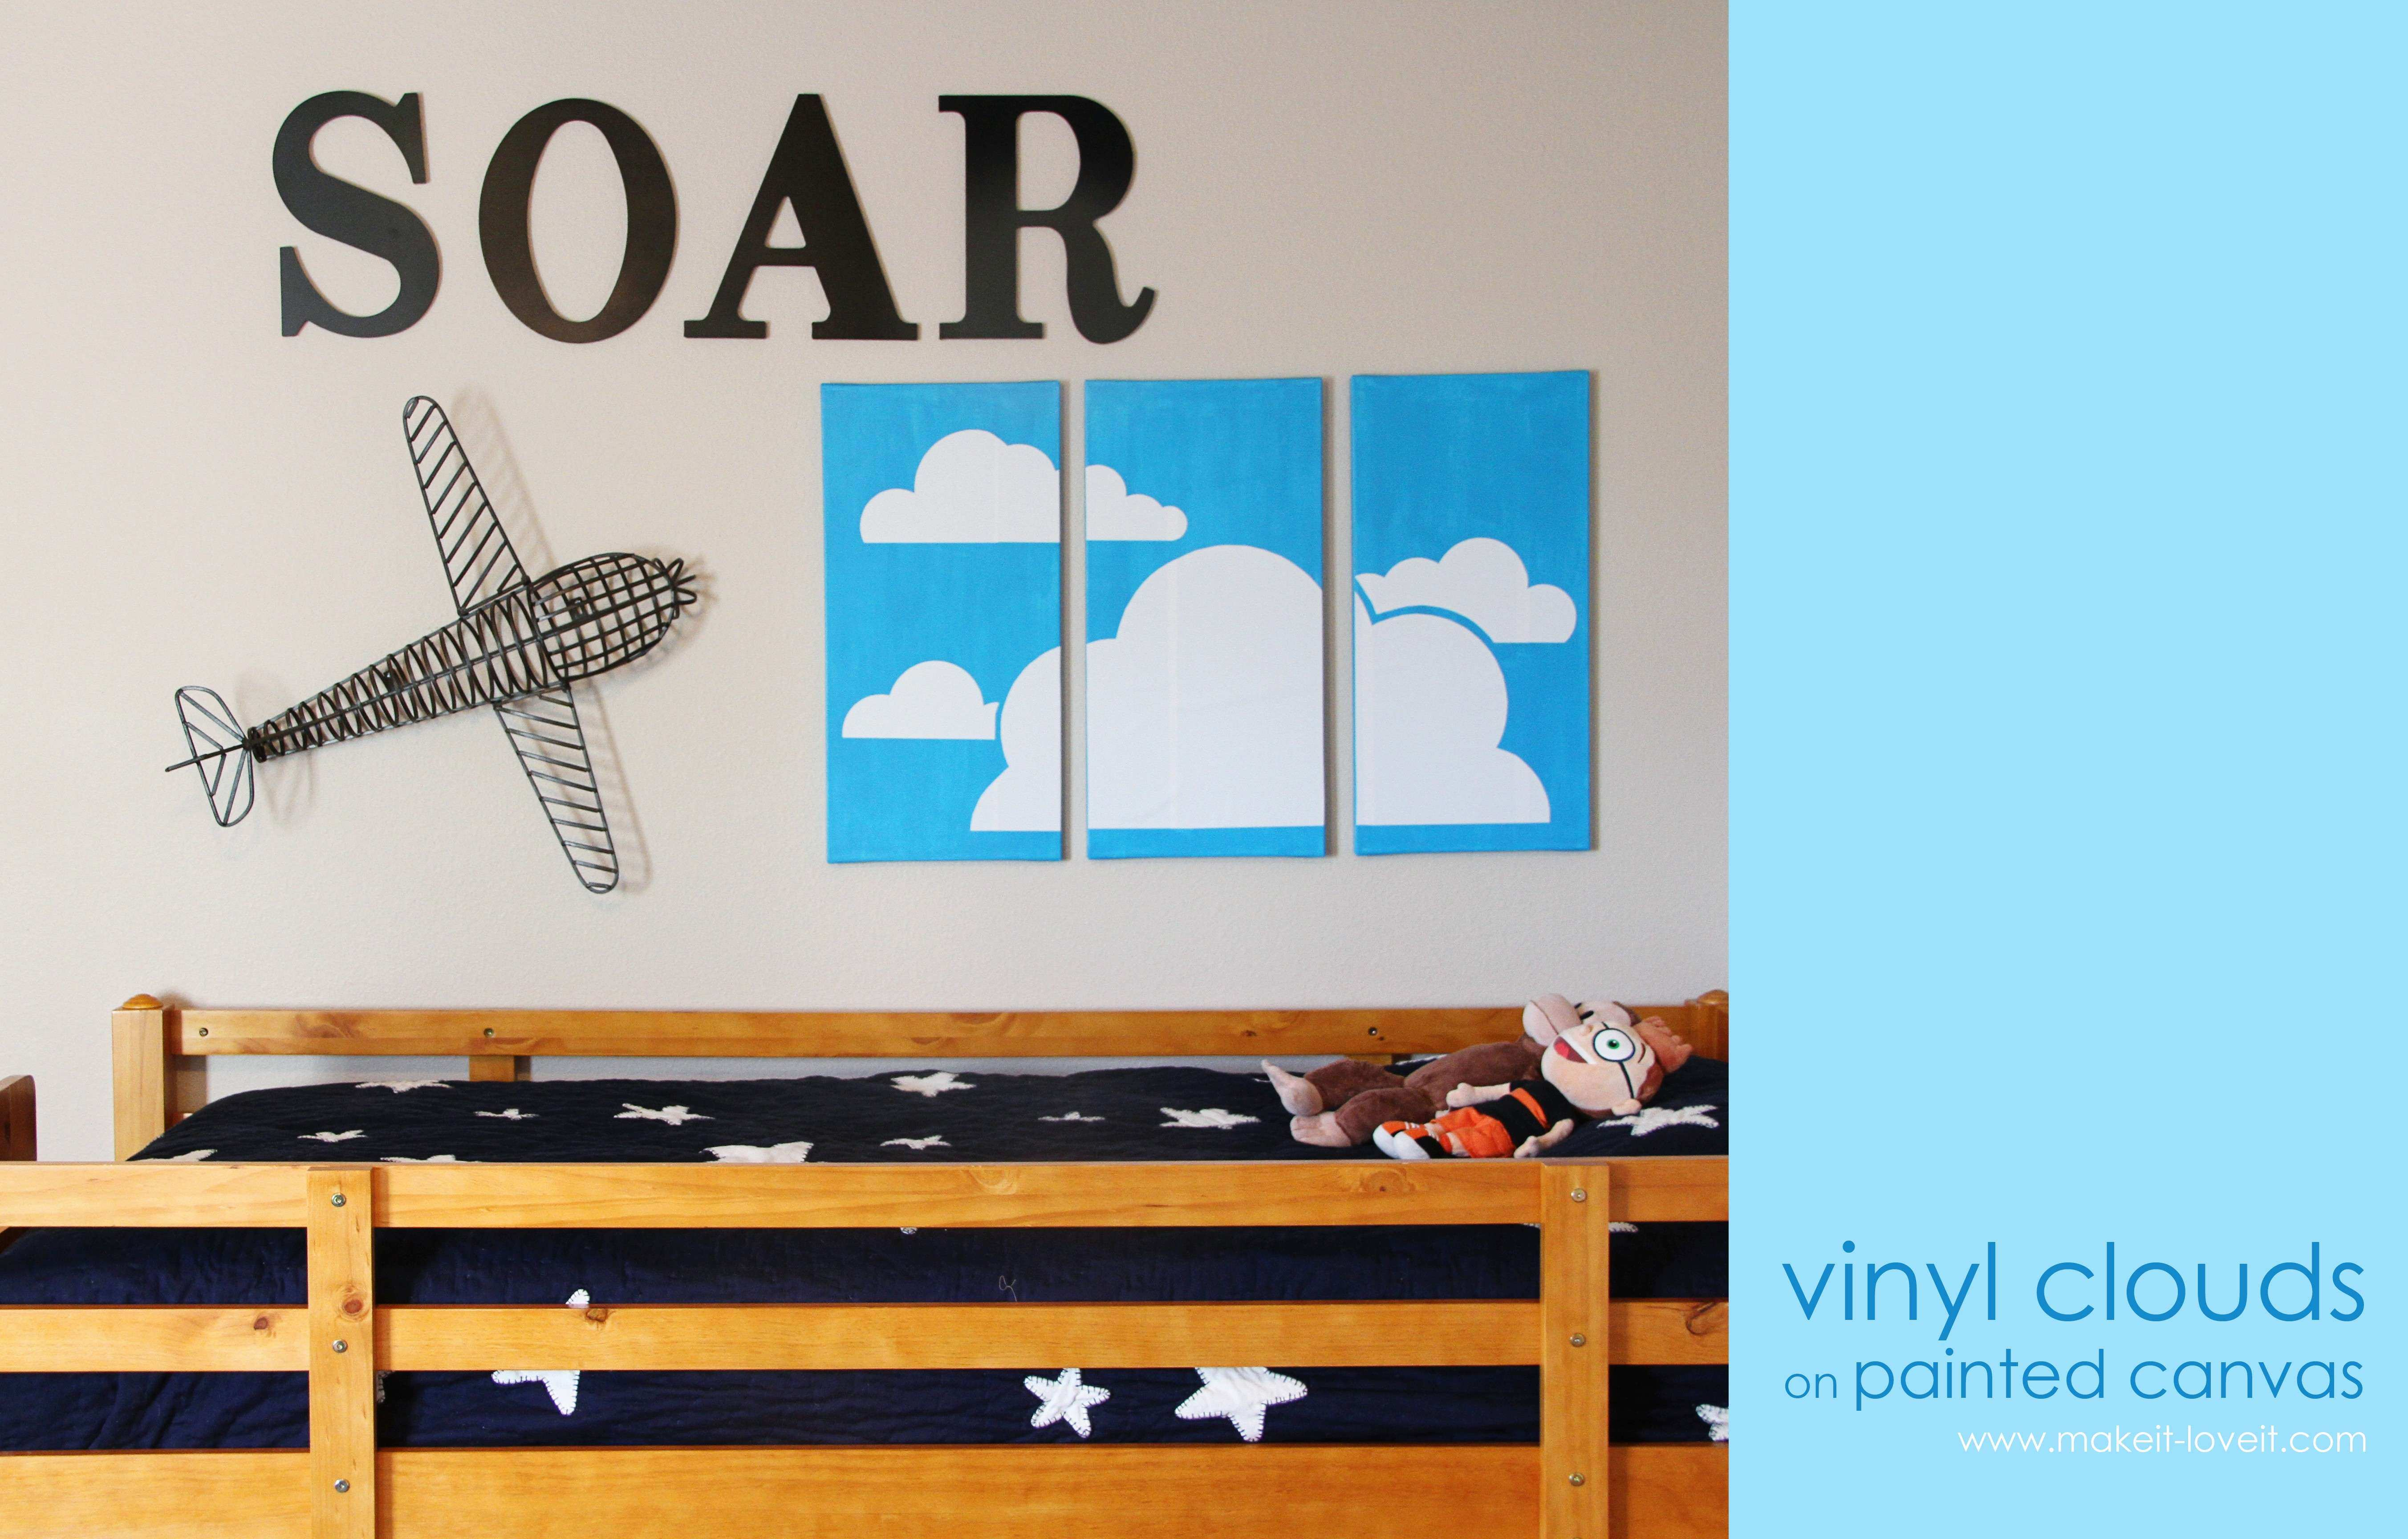 Vinyl Clouds on Painted Canvas boys room wall decor